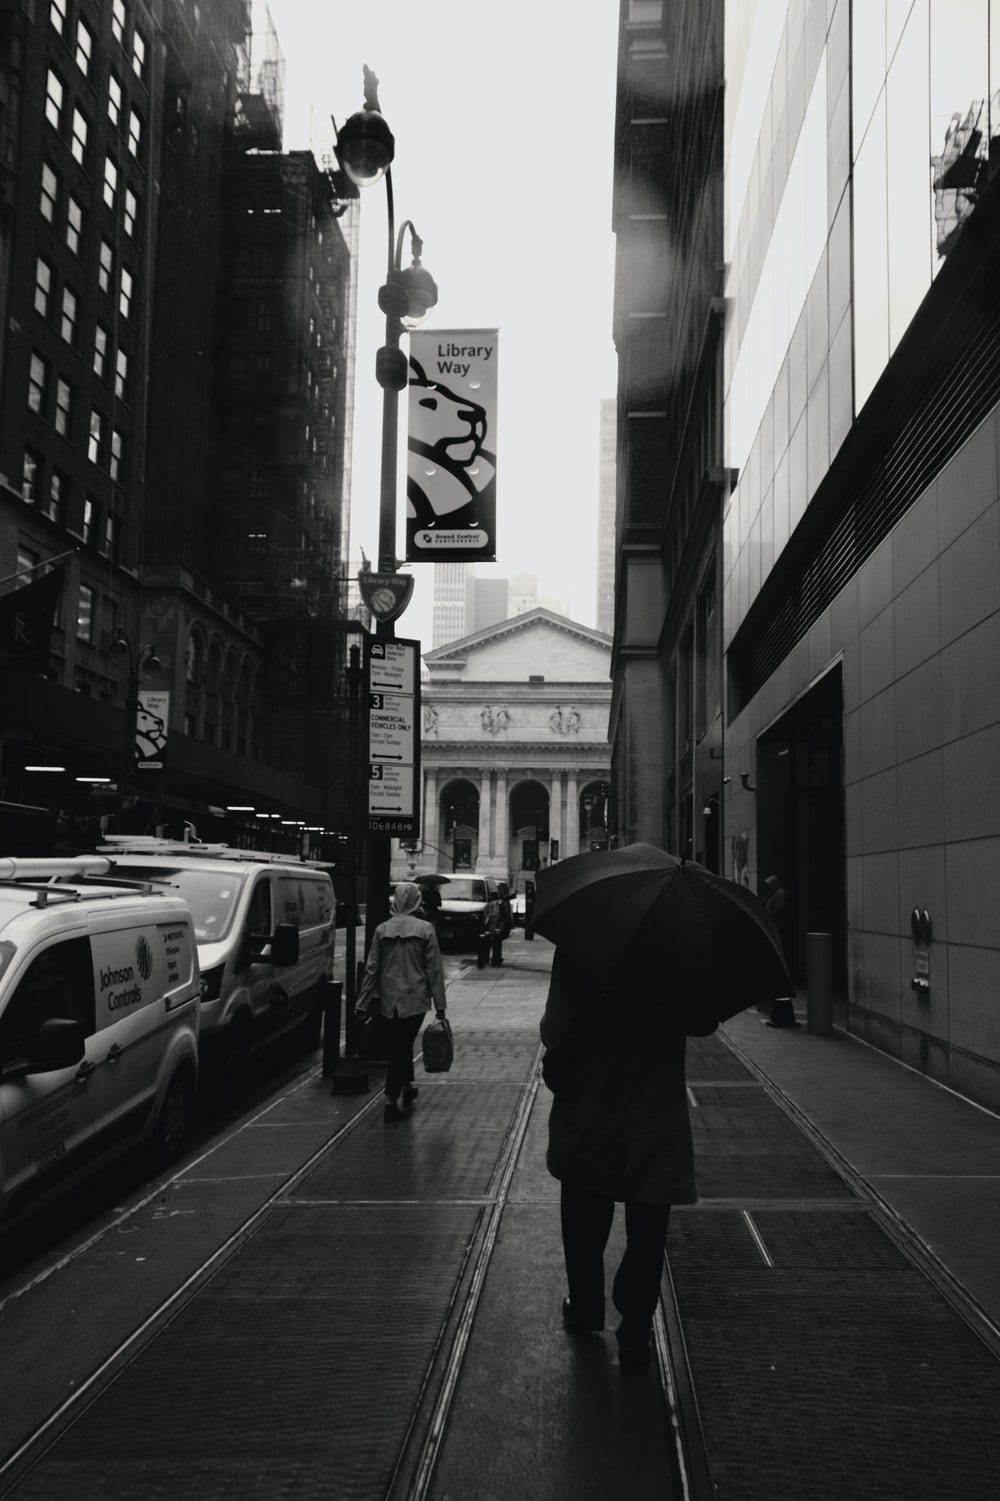 grayscale photo of person under umbrella walking on roadside